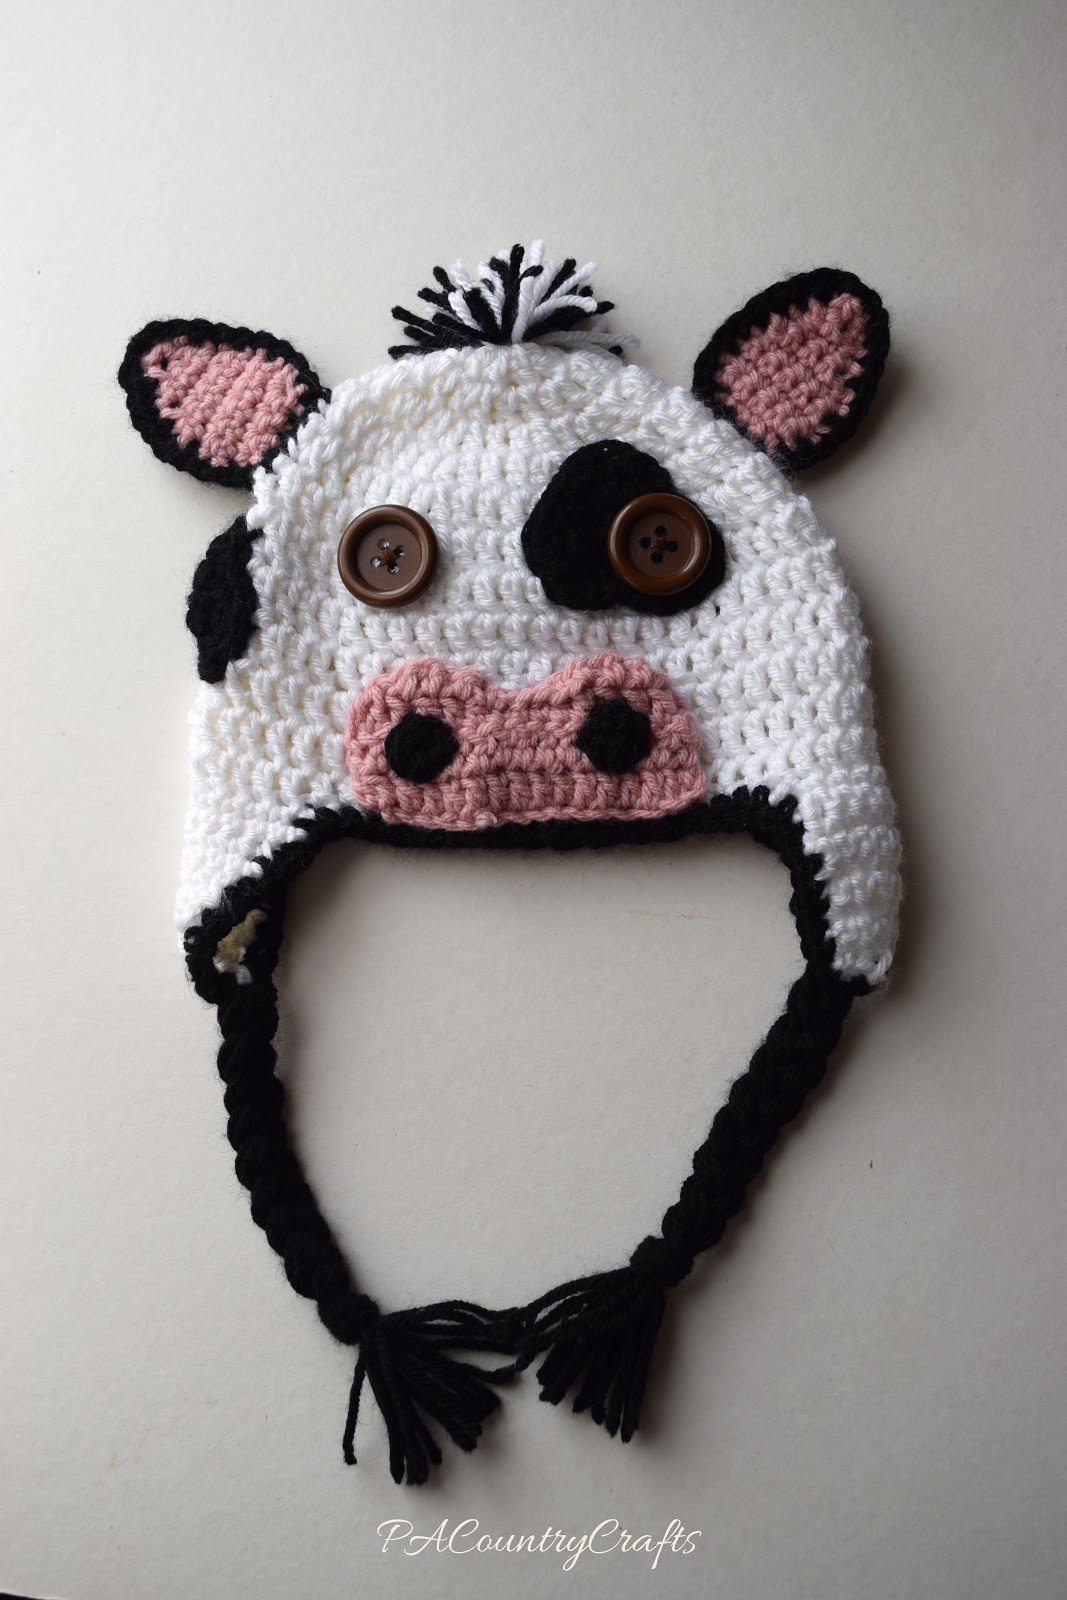 Crochet Cow Hats | PA Country Crafts